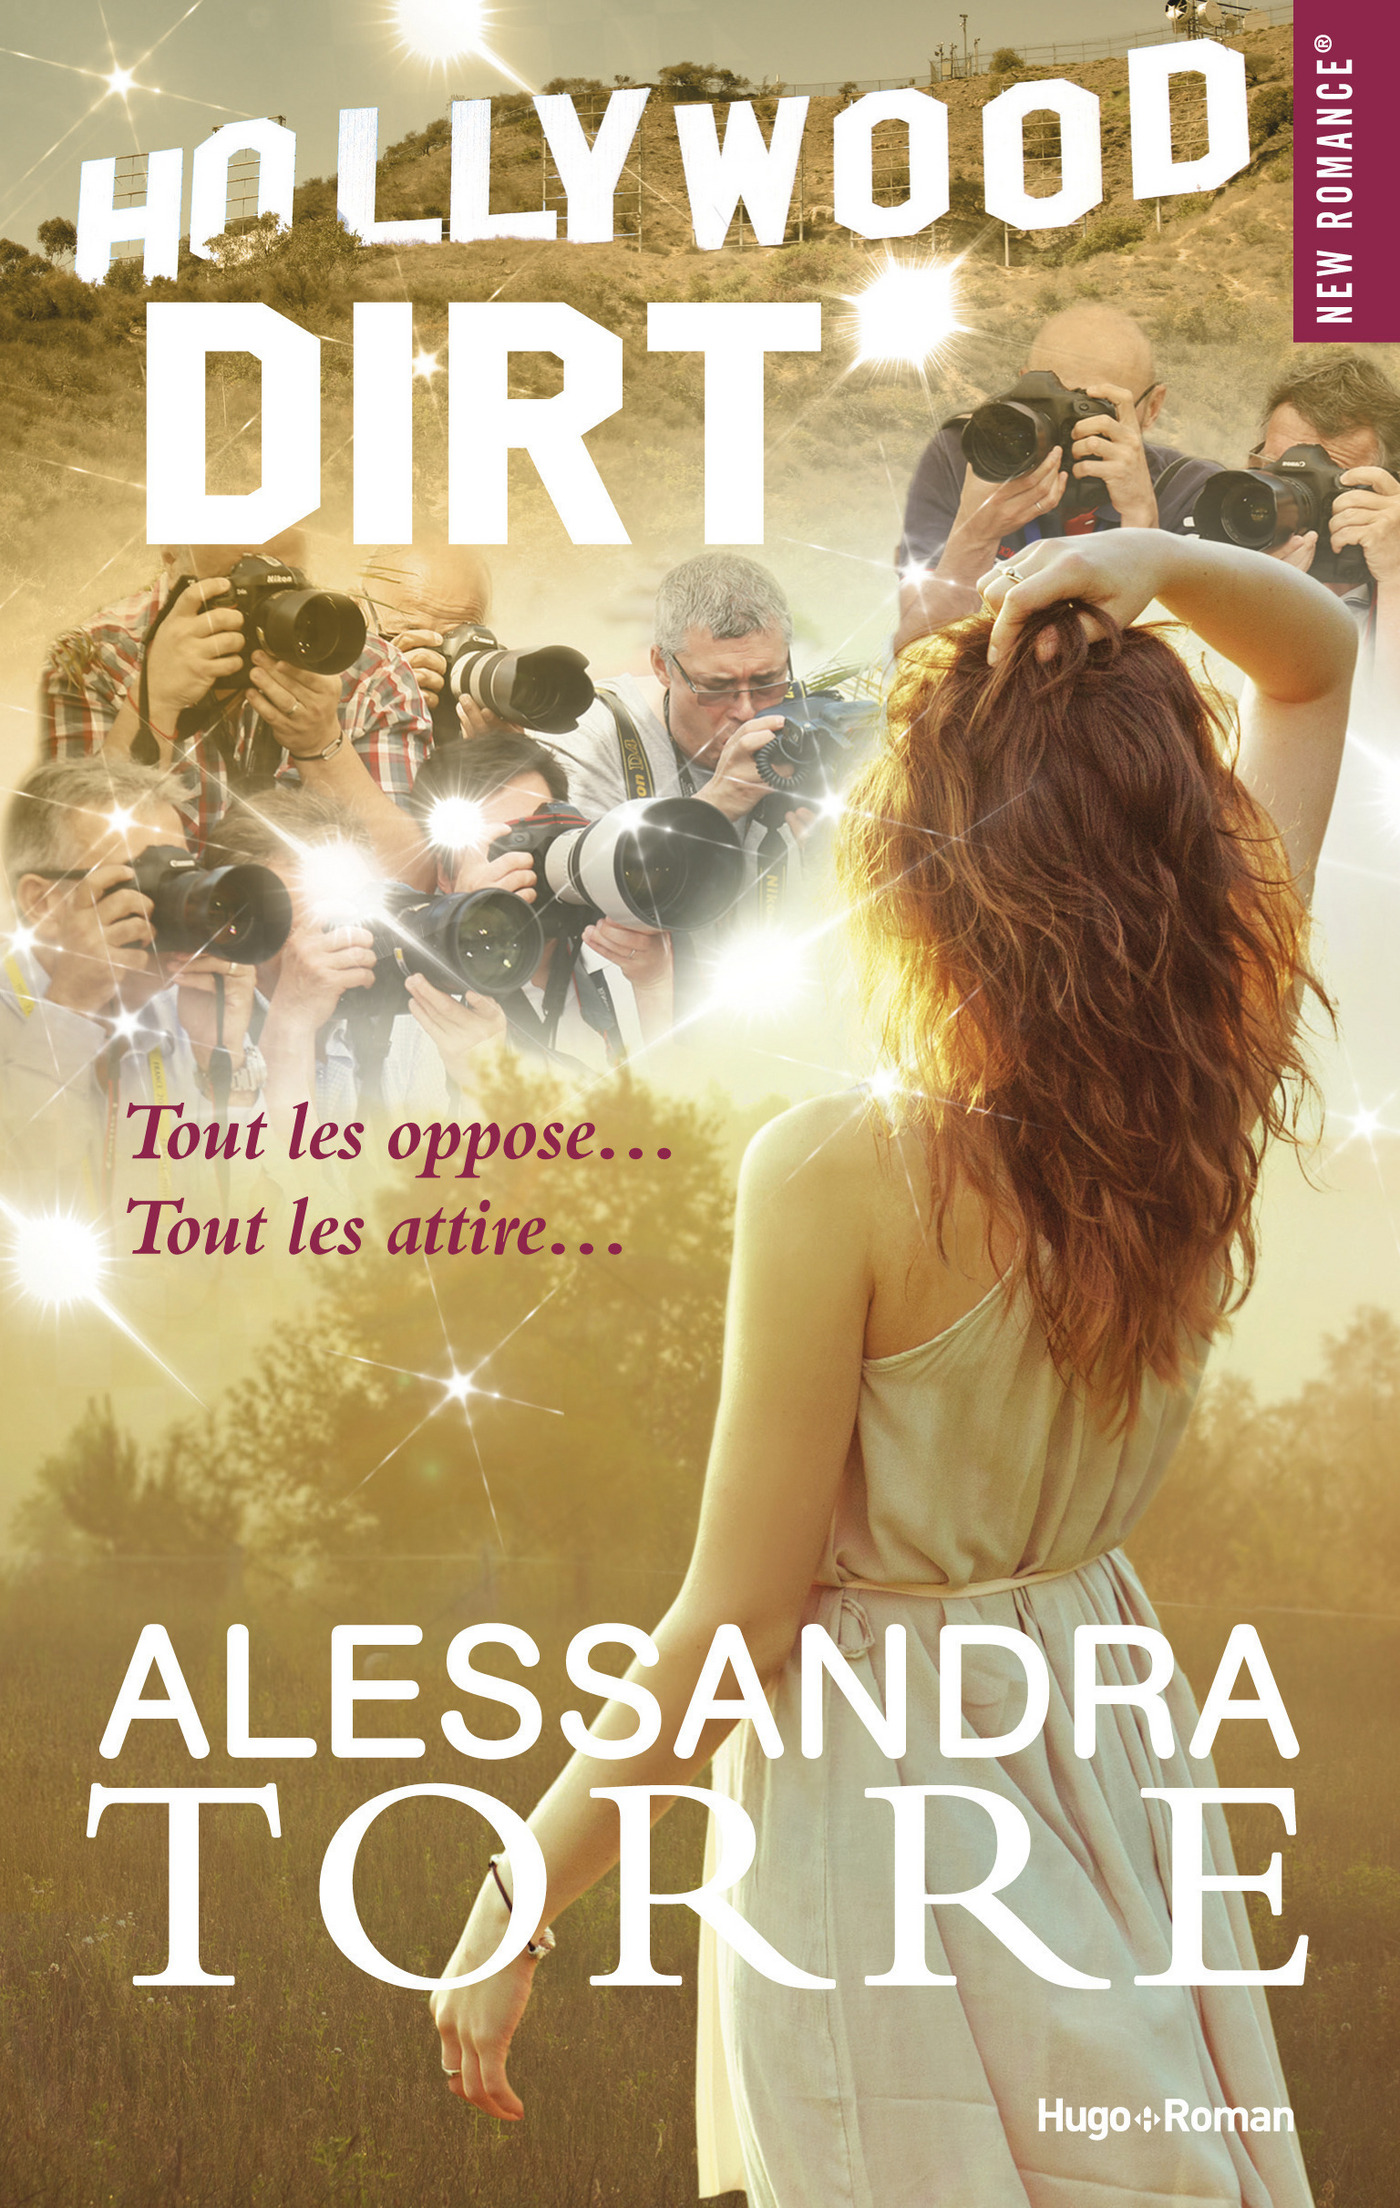 Hollywood dirt -Extrait offert-